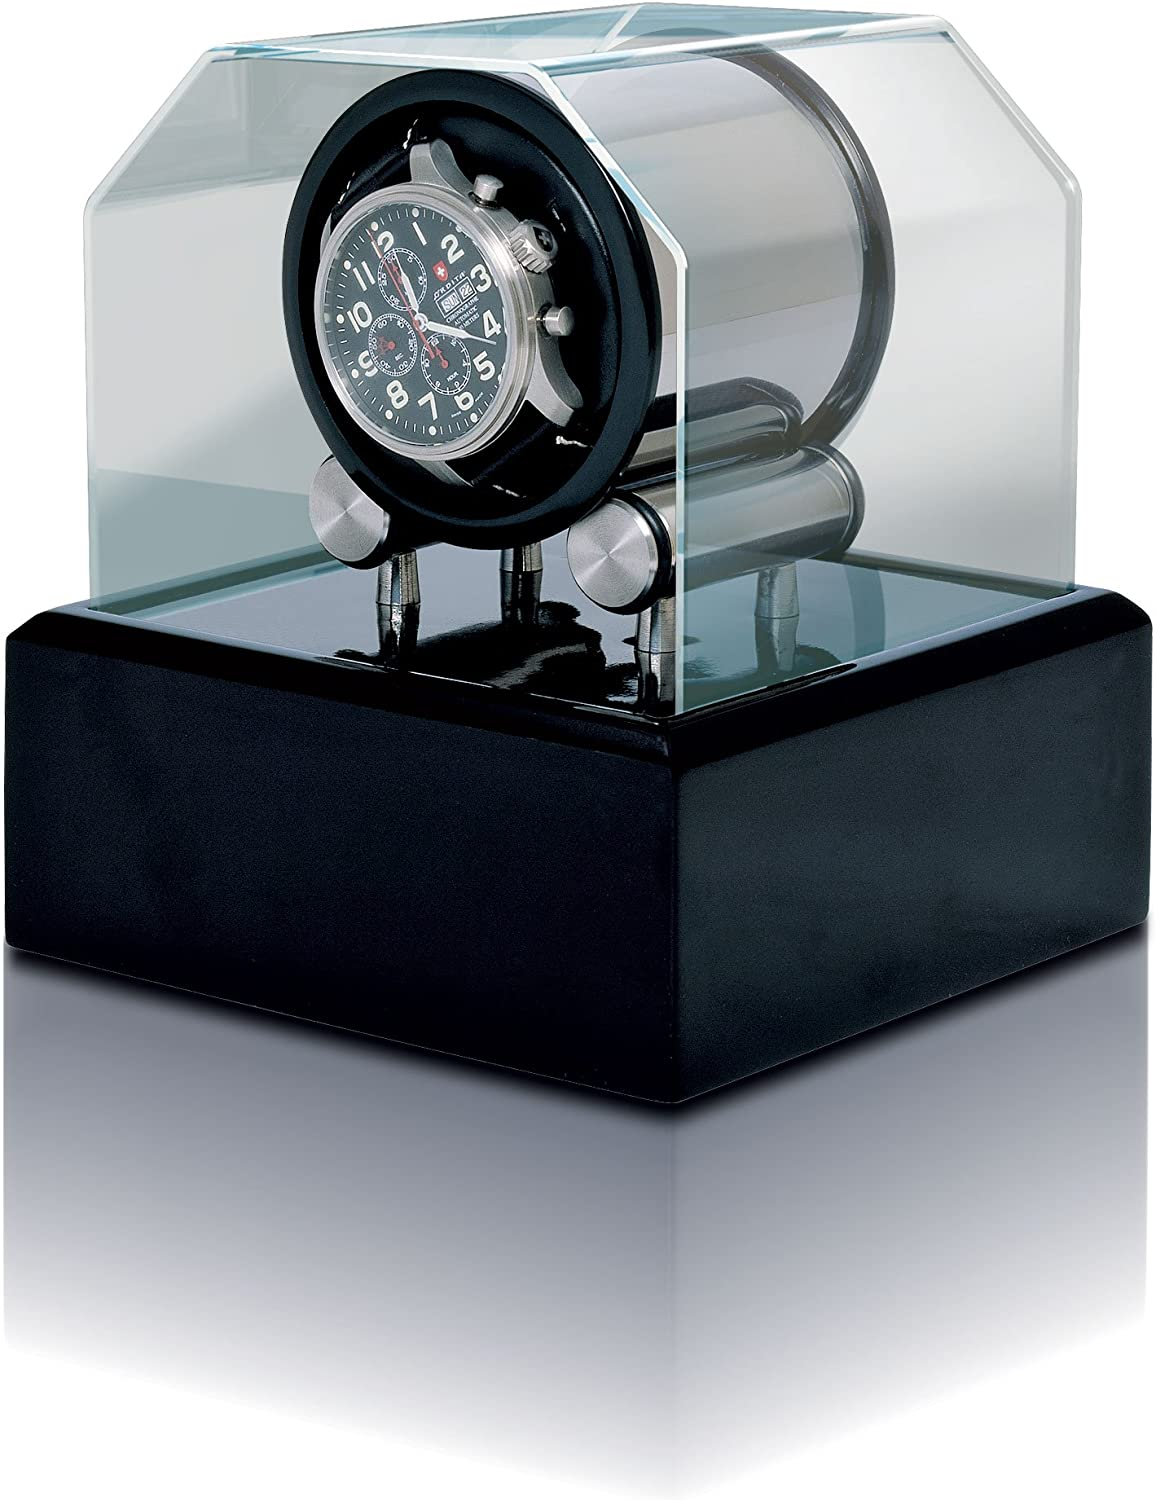 Futura 1 Watch Winder Over item handling 2021new shipping free shipping with Lacquer by Orbita Black Base